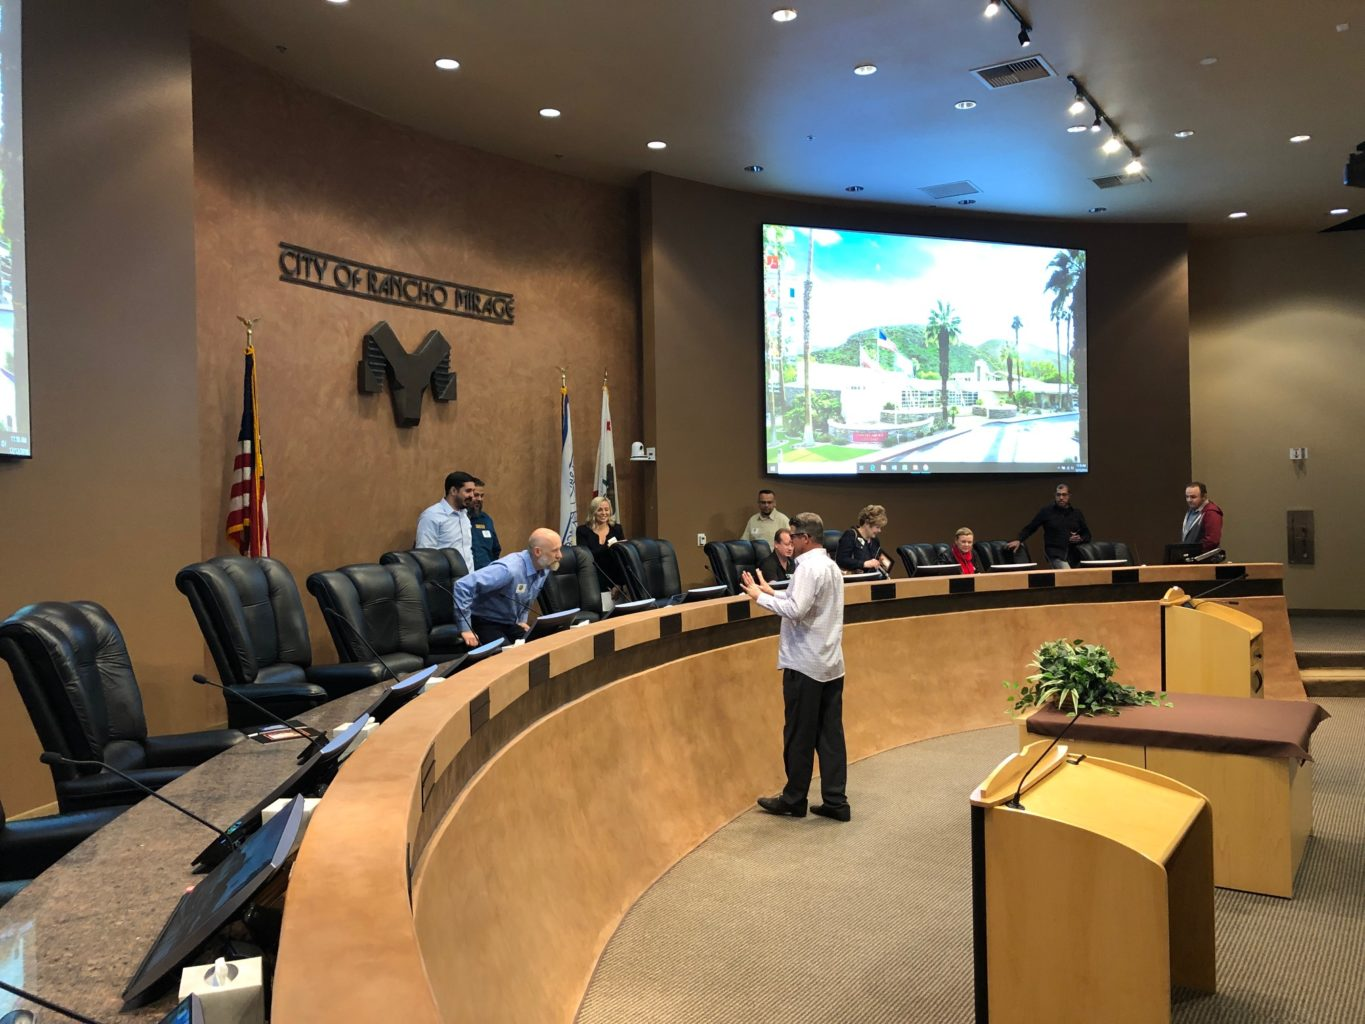 Western Audio Visual, Western AV, WAV, City of Rancho Mirage, Council Chamber